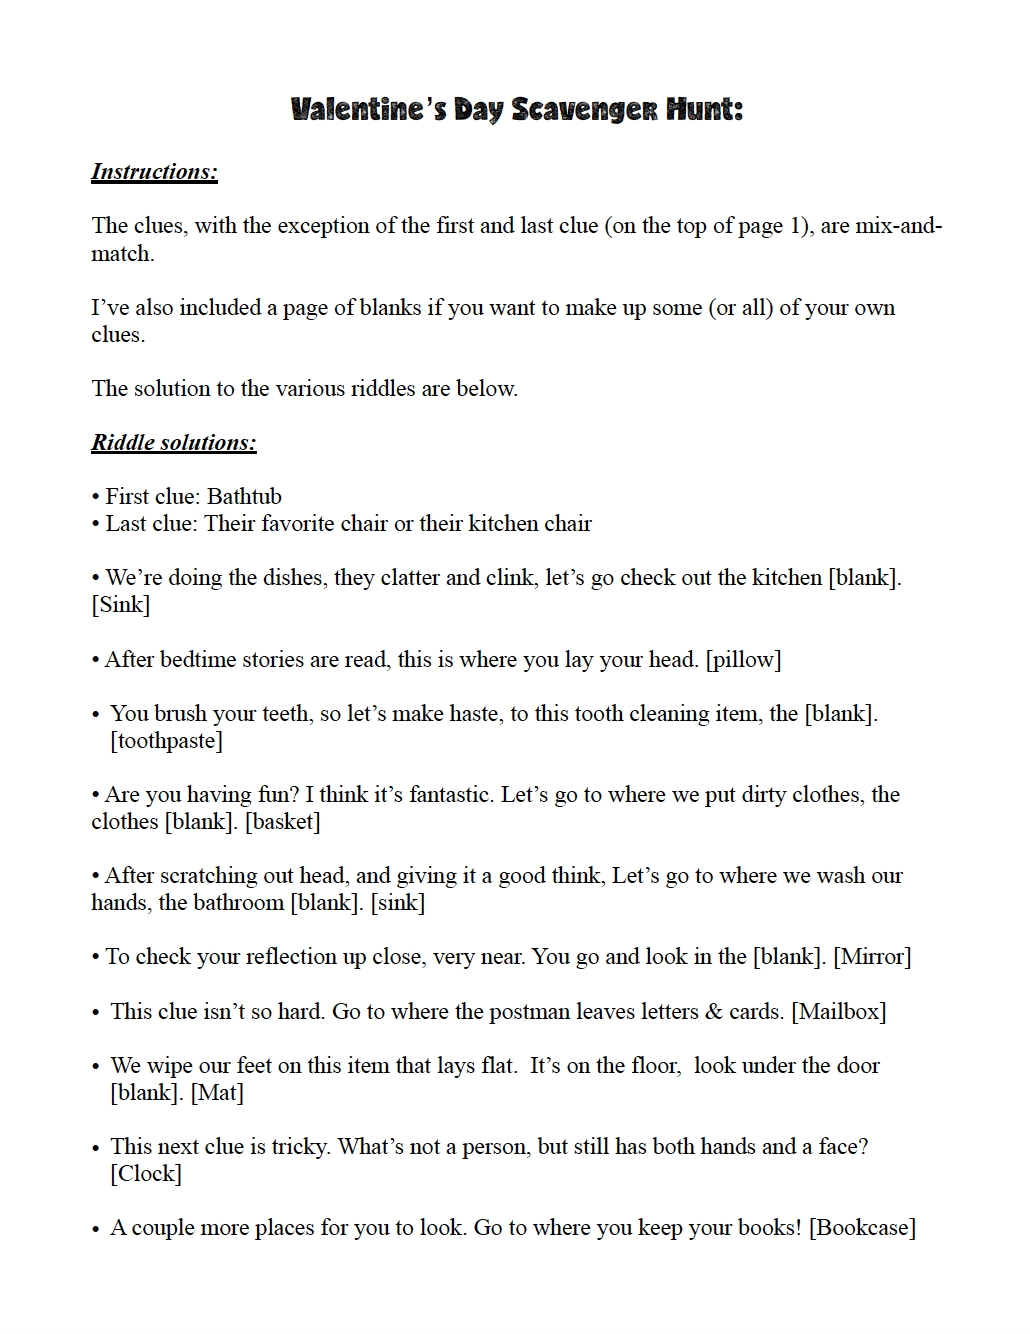 10 Nice Crazy Scavenger Hunt Ideas For Adults